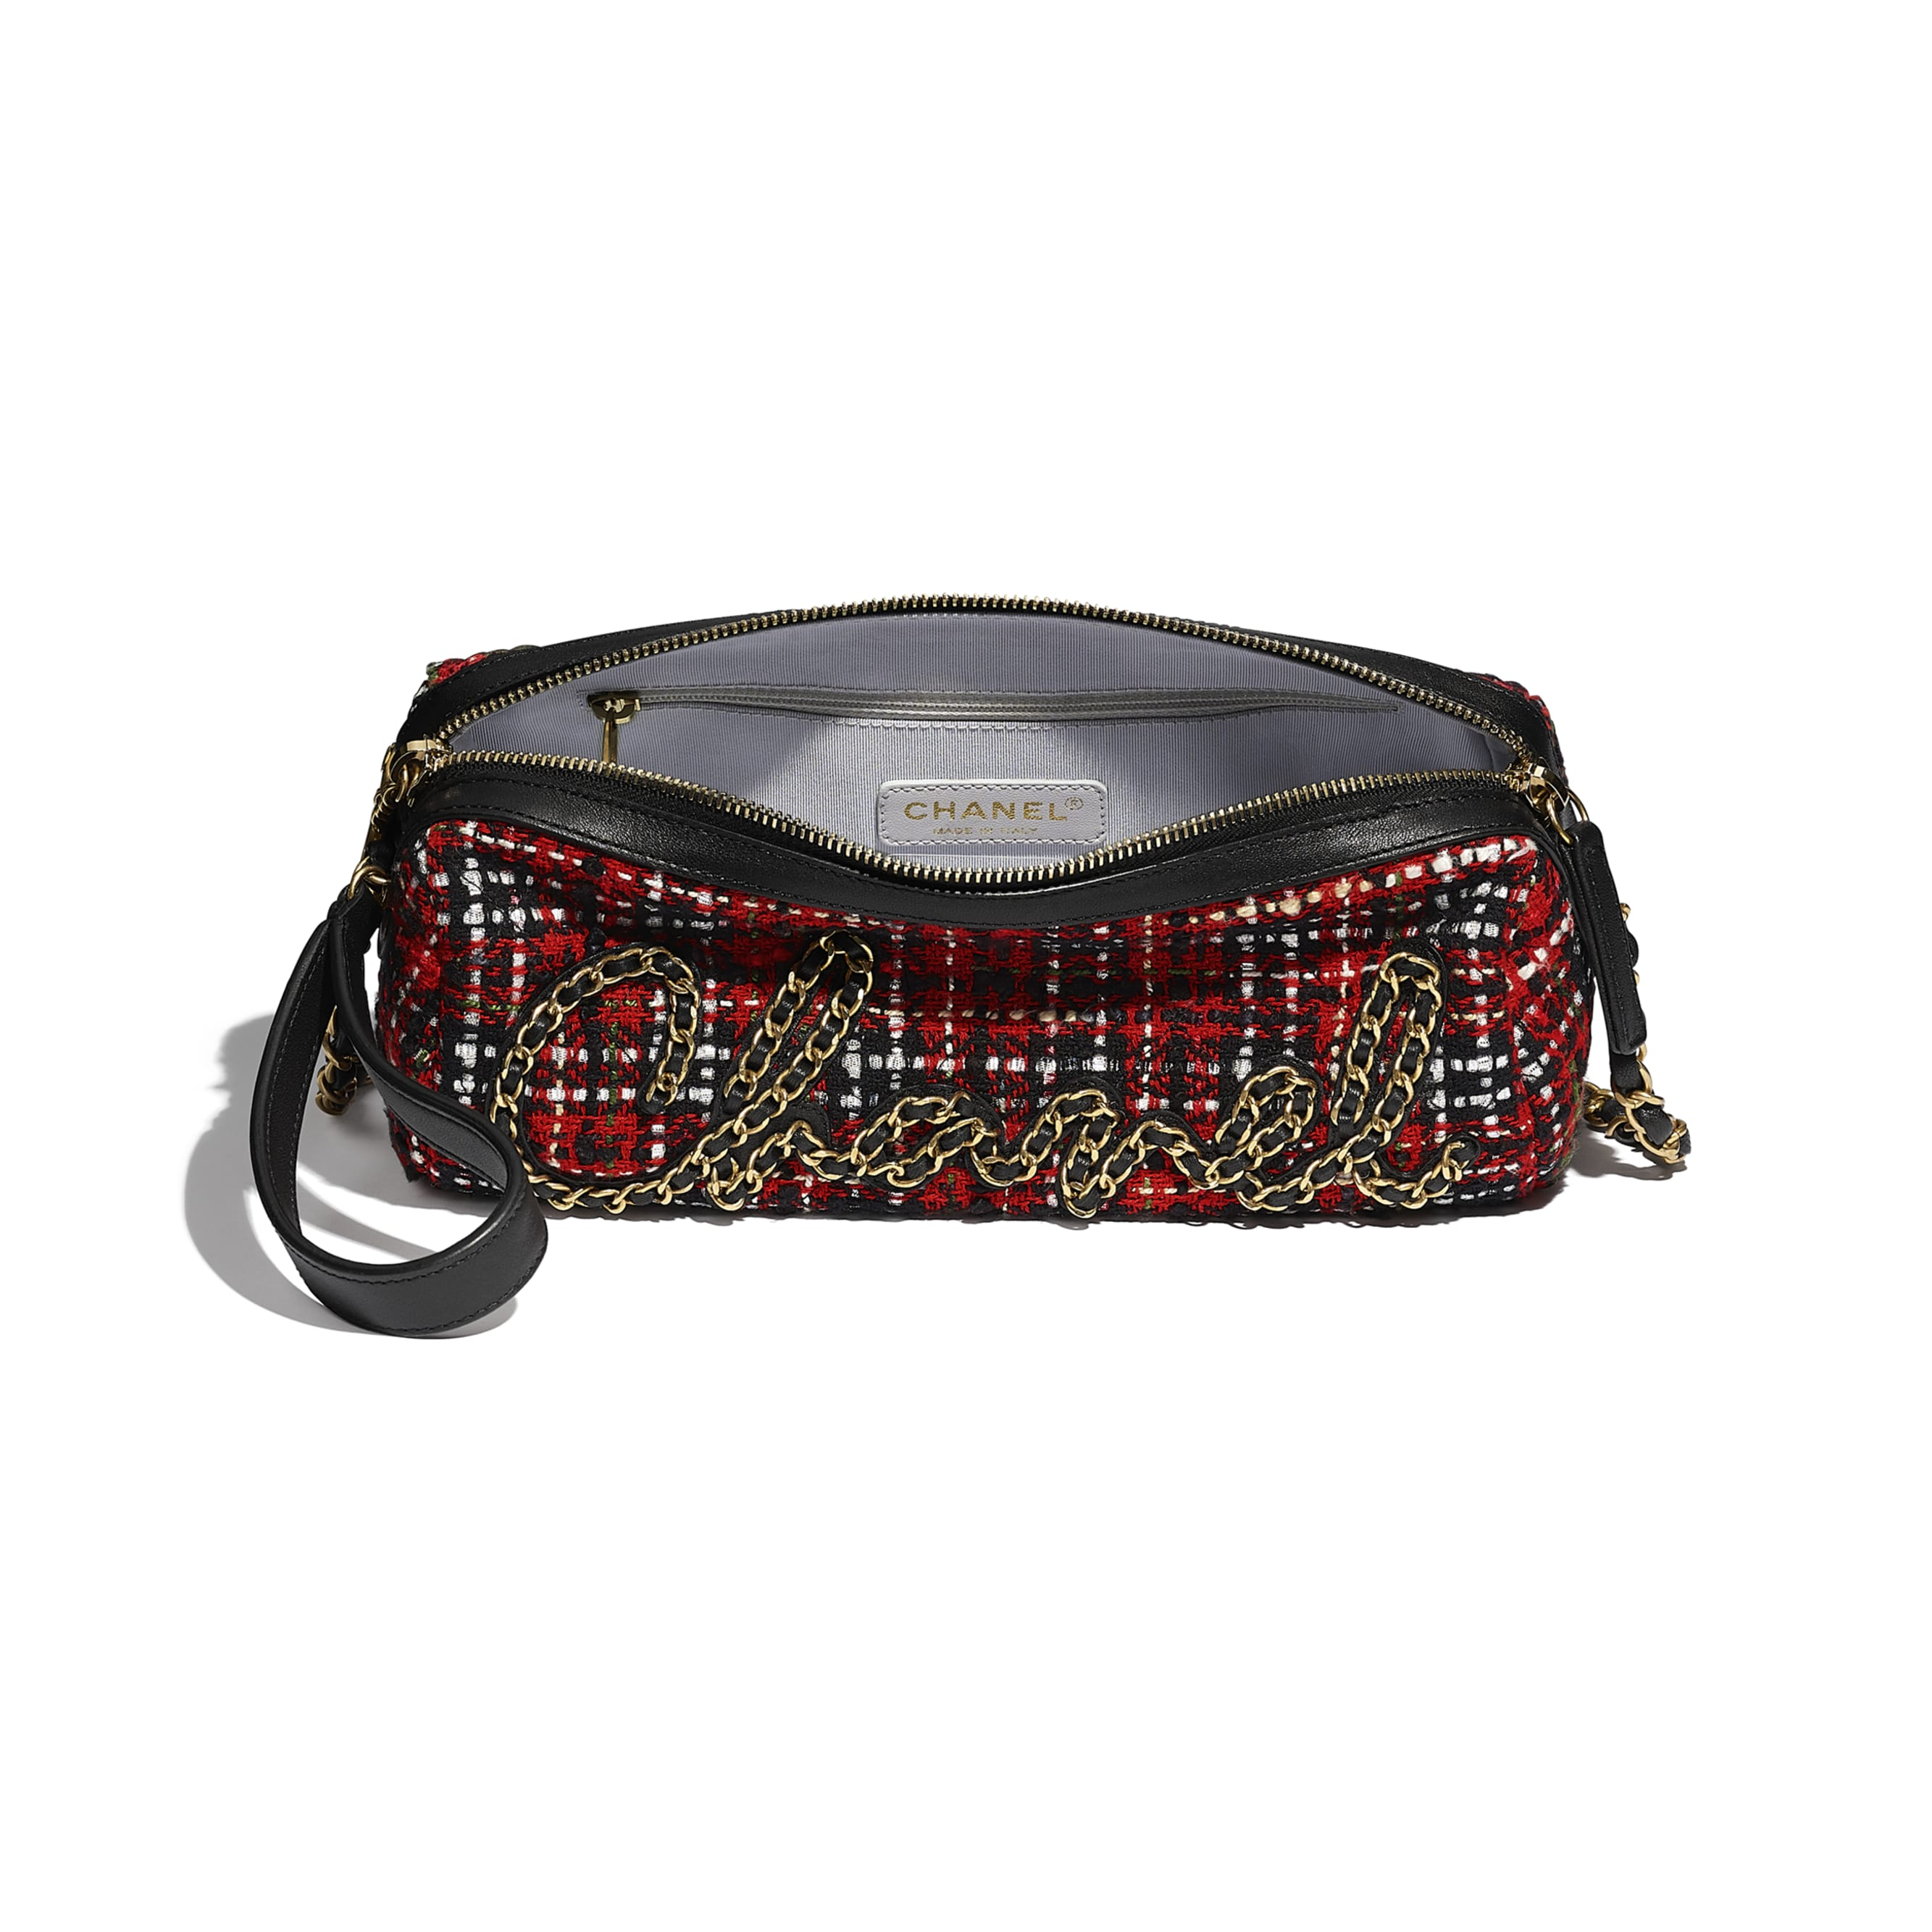 Bowling Bag - Red, Black, White & Green - Tweed, Calfskin & Gold-Tone Metal - CHANEL - Other view - see standard sized version